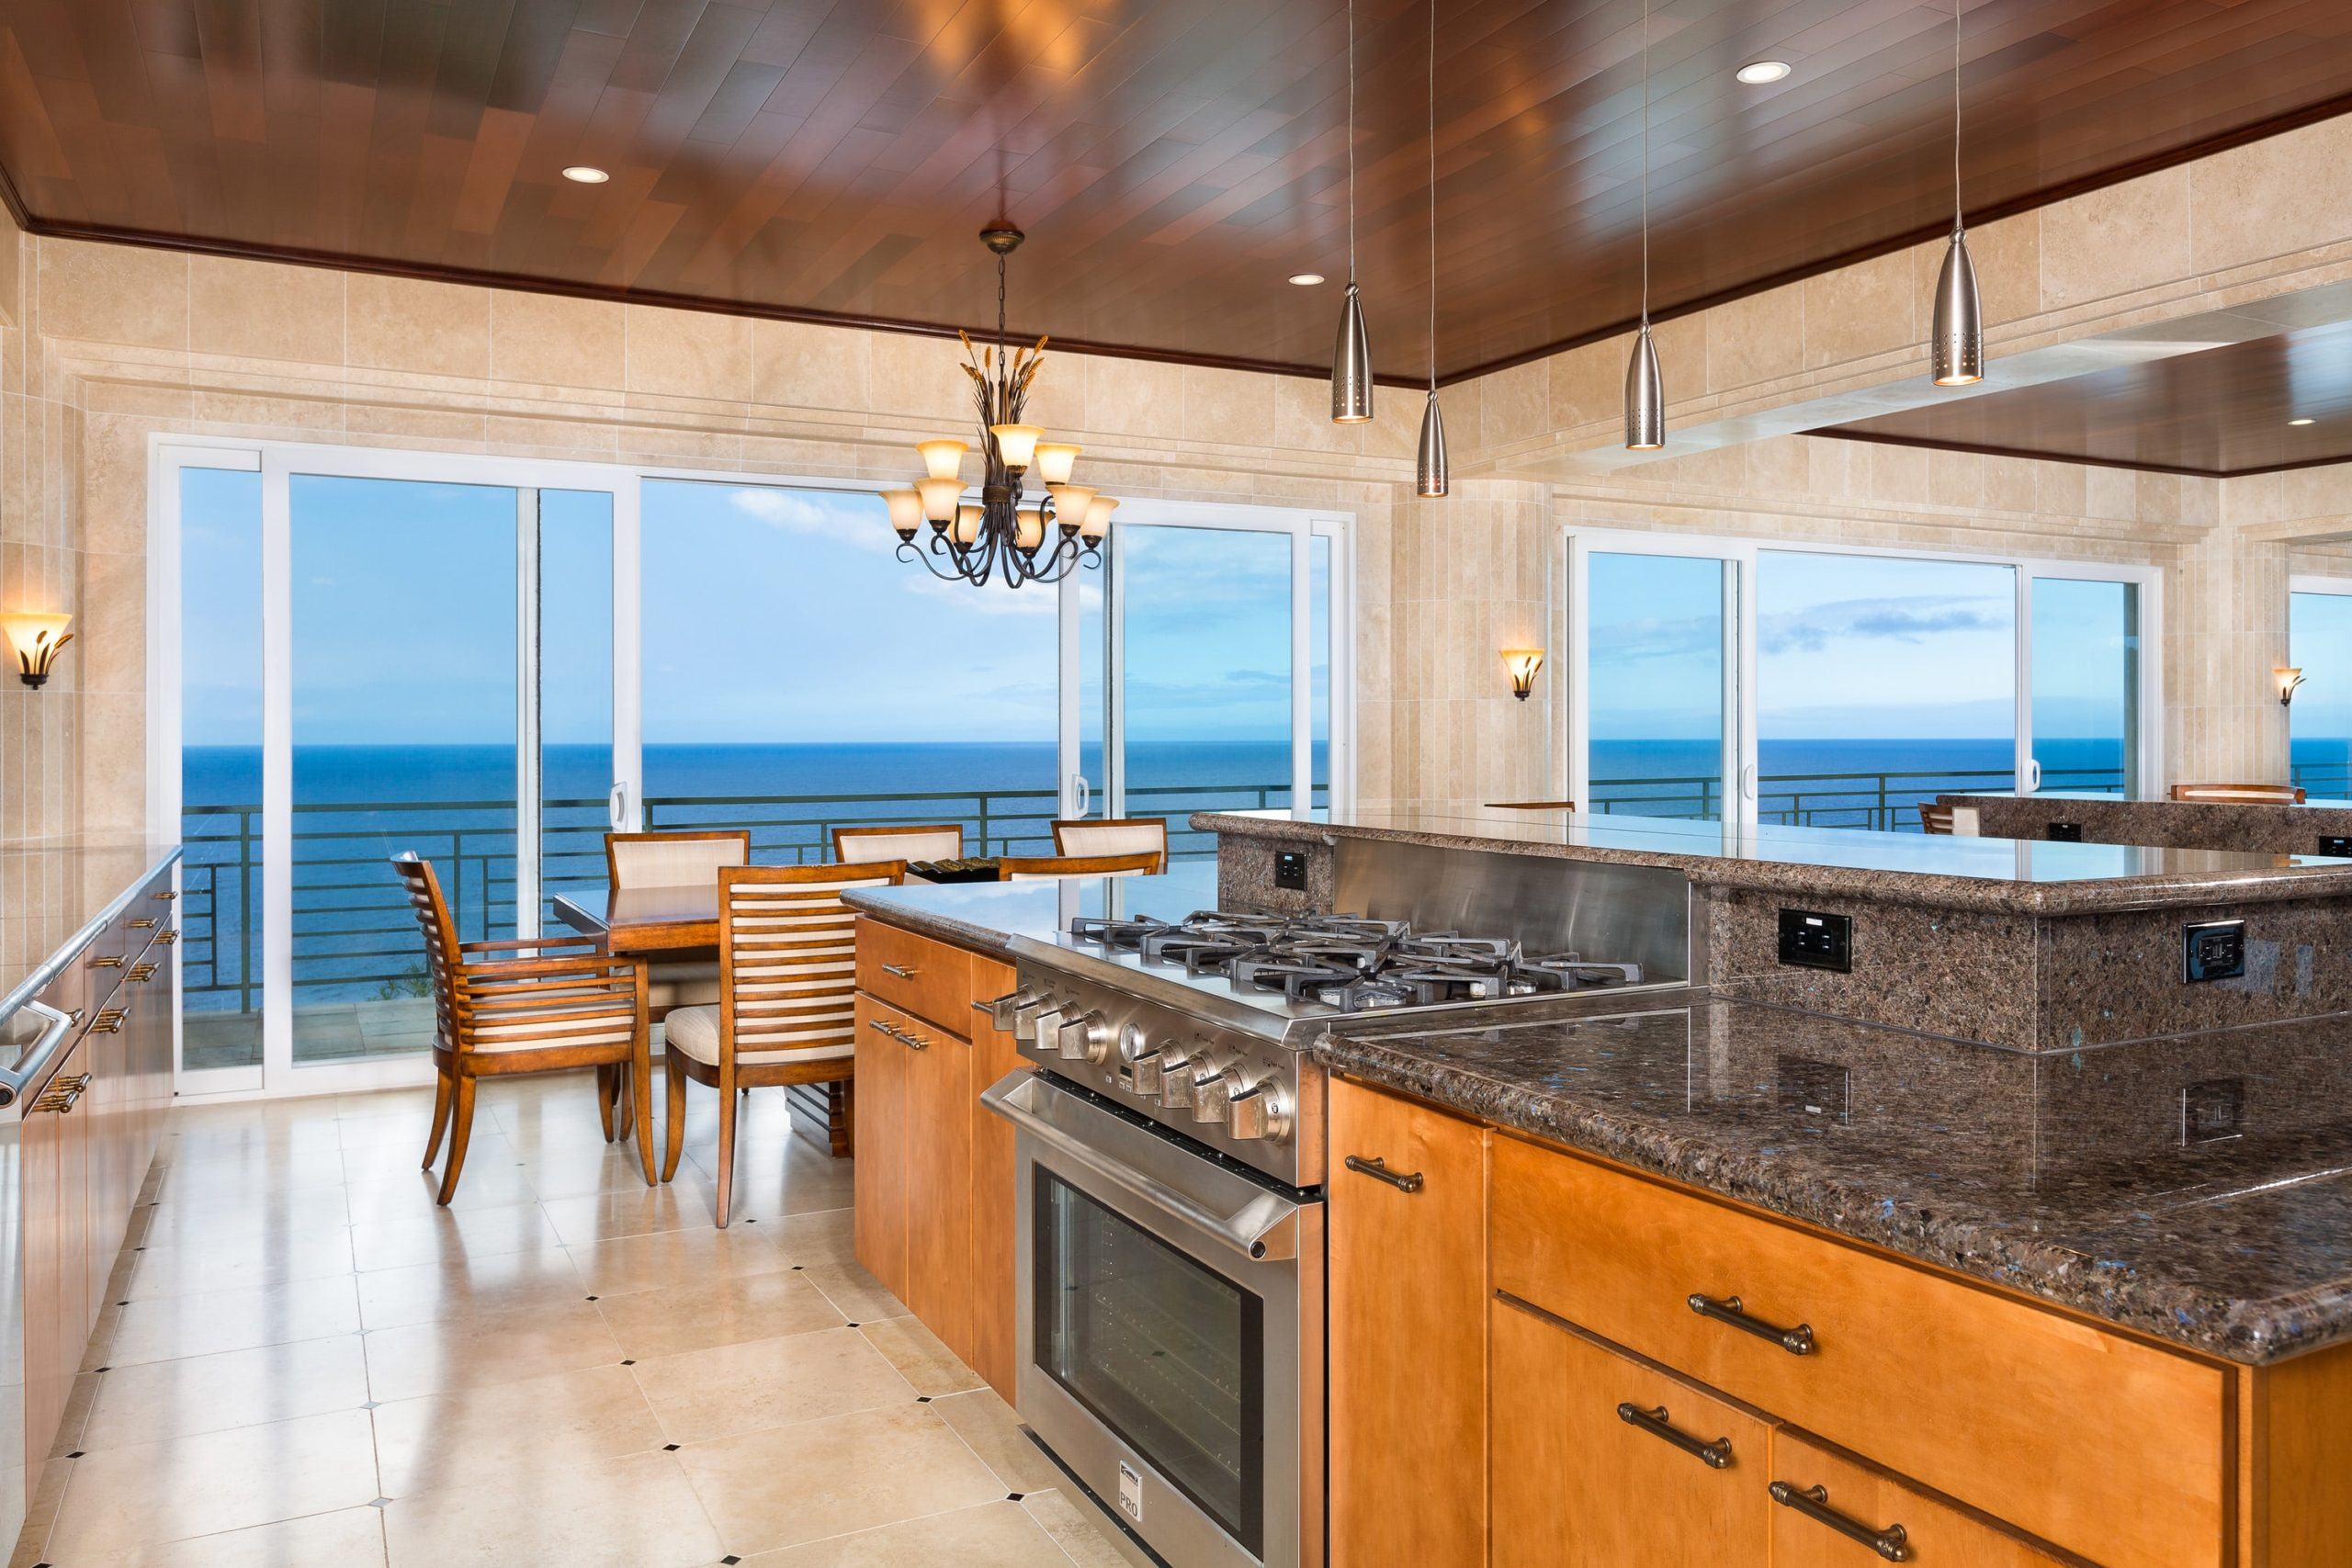 The kitchen has granite countertops, a breakfast bar, stainless steel appliances, and a view to the ocean. Image courtesy of Toptenrealestatedeals.com.